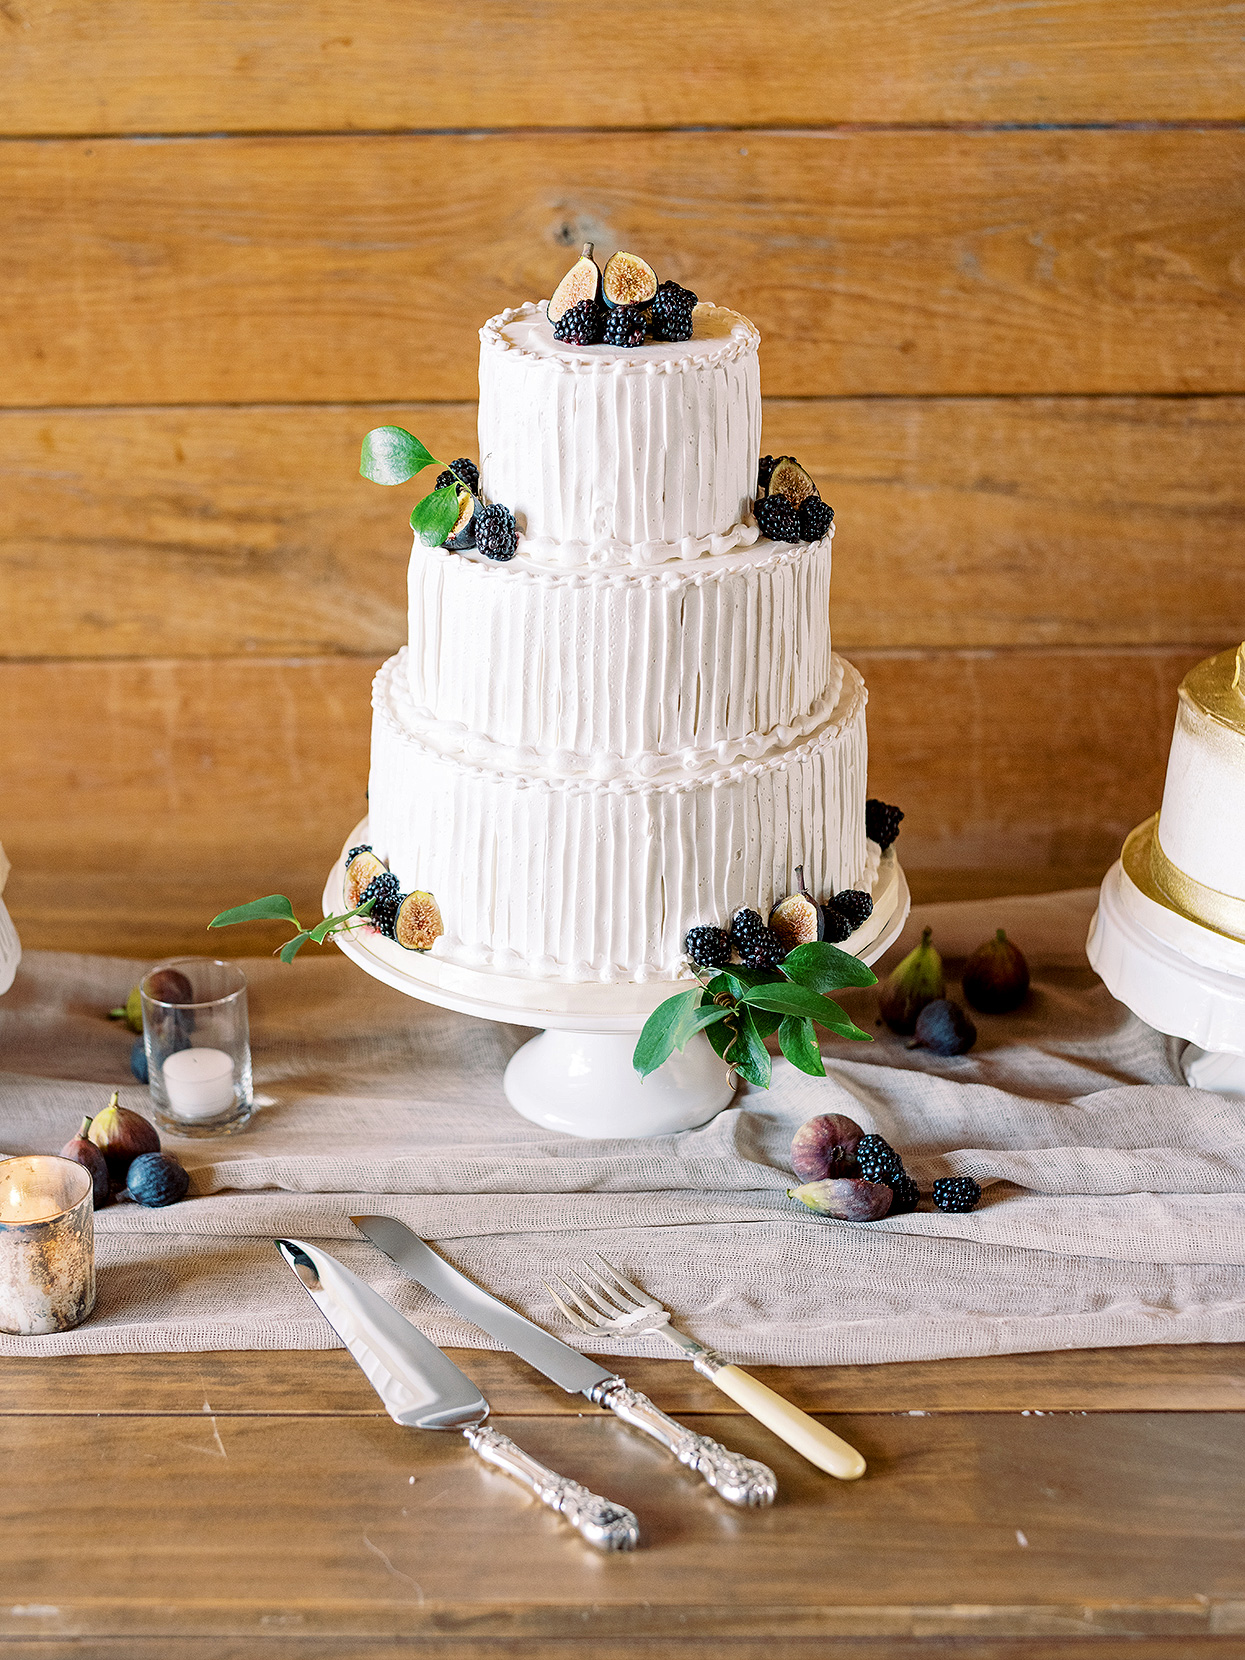 Claire and Dan's white three-tiered wedding cake with berries and figs